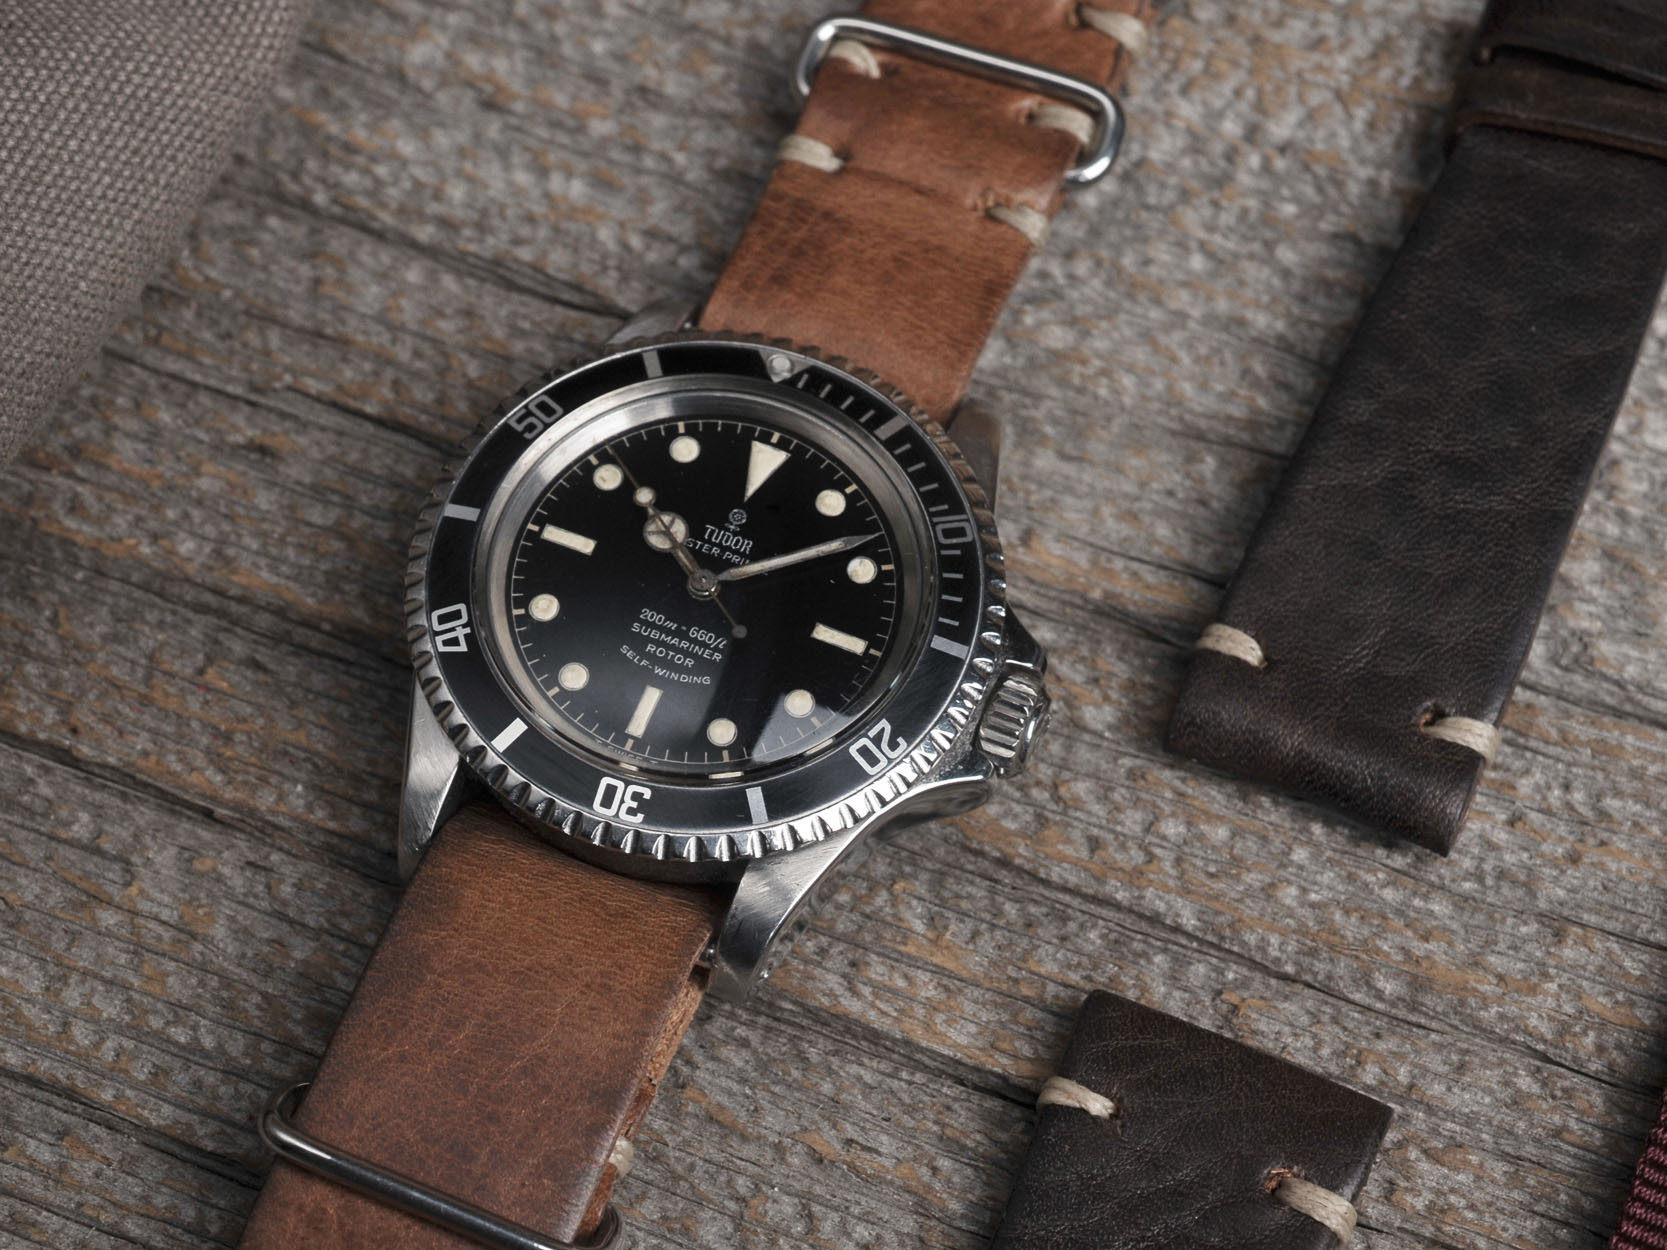 B&S Tudor W-23 7928 Ross 11